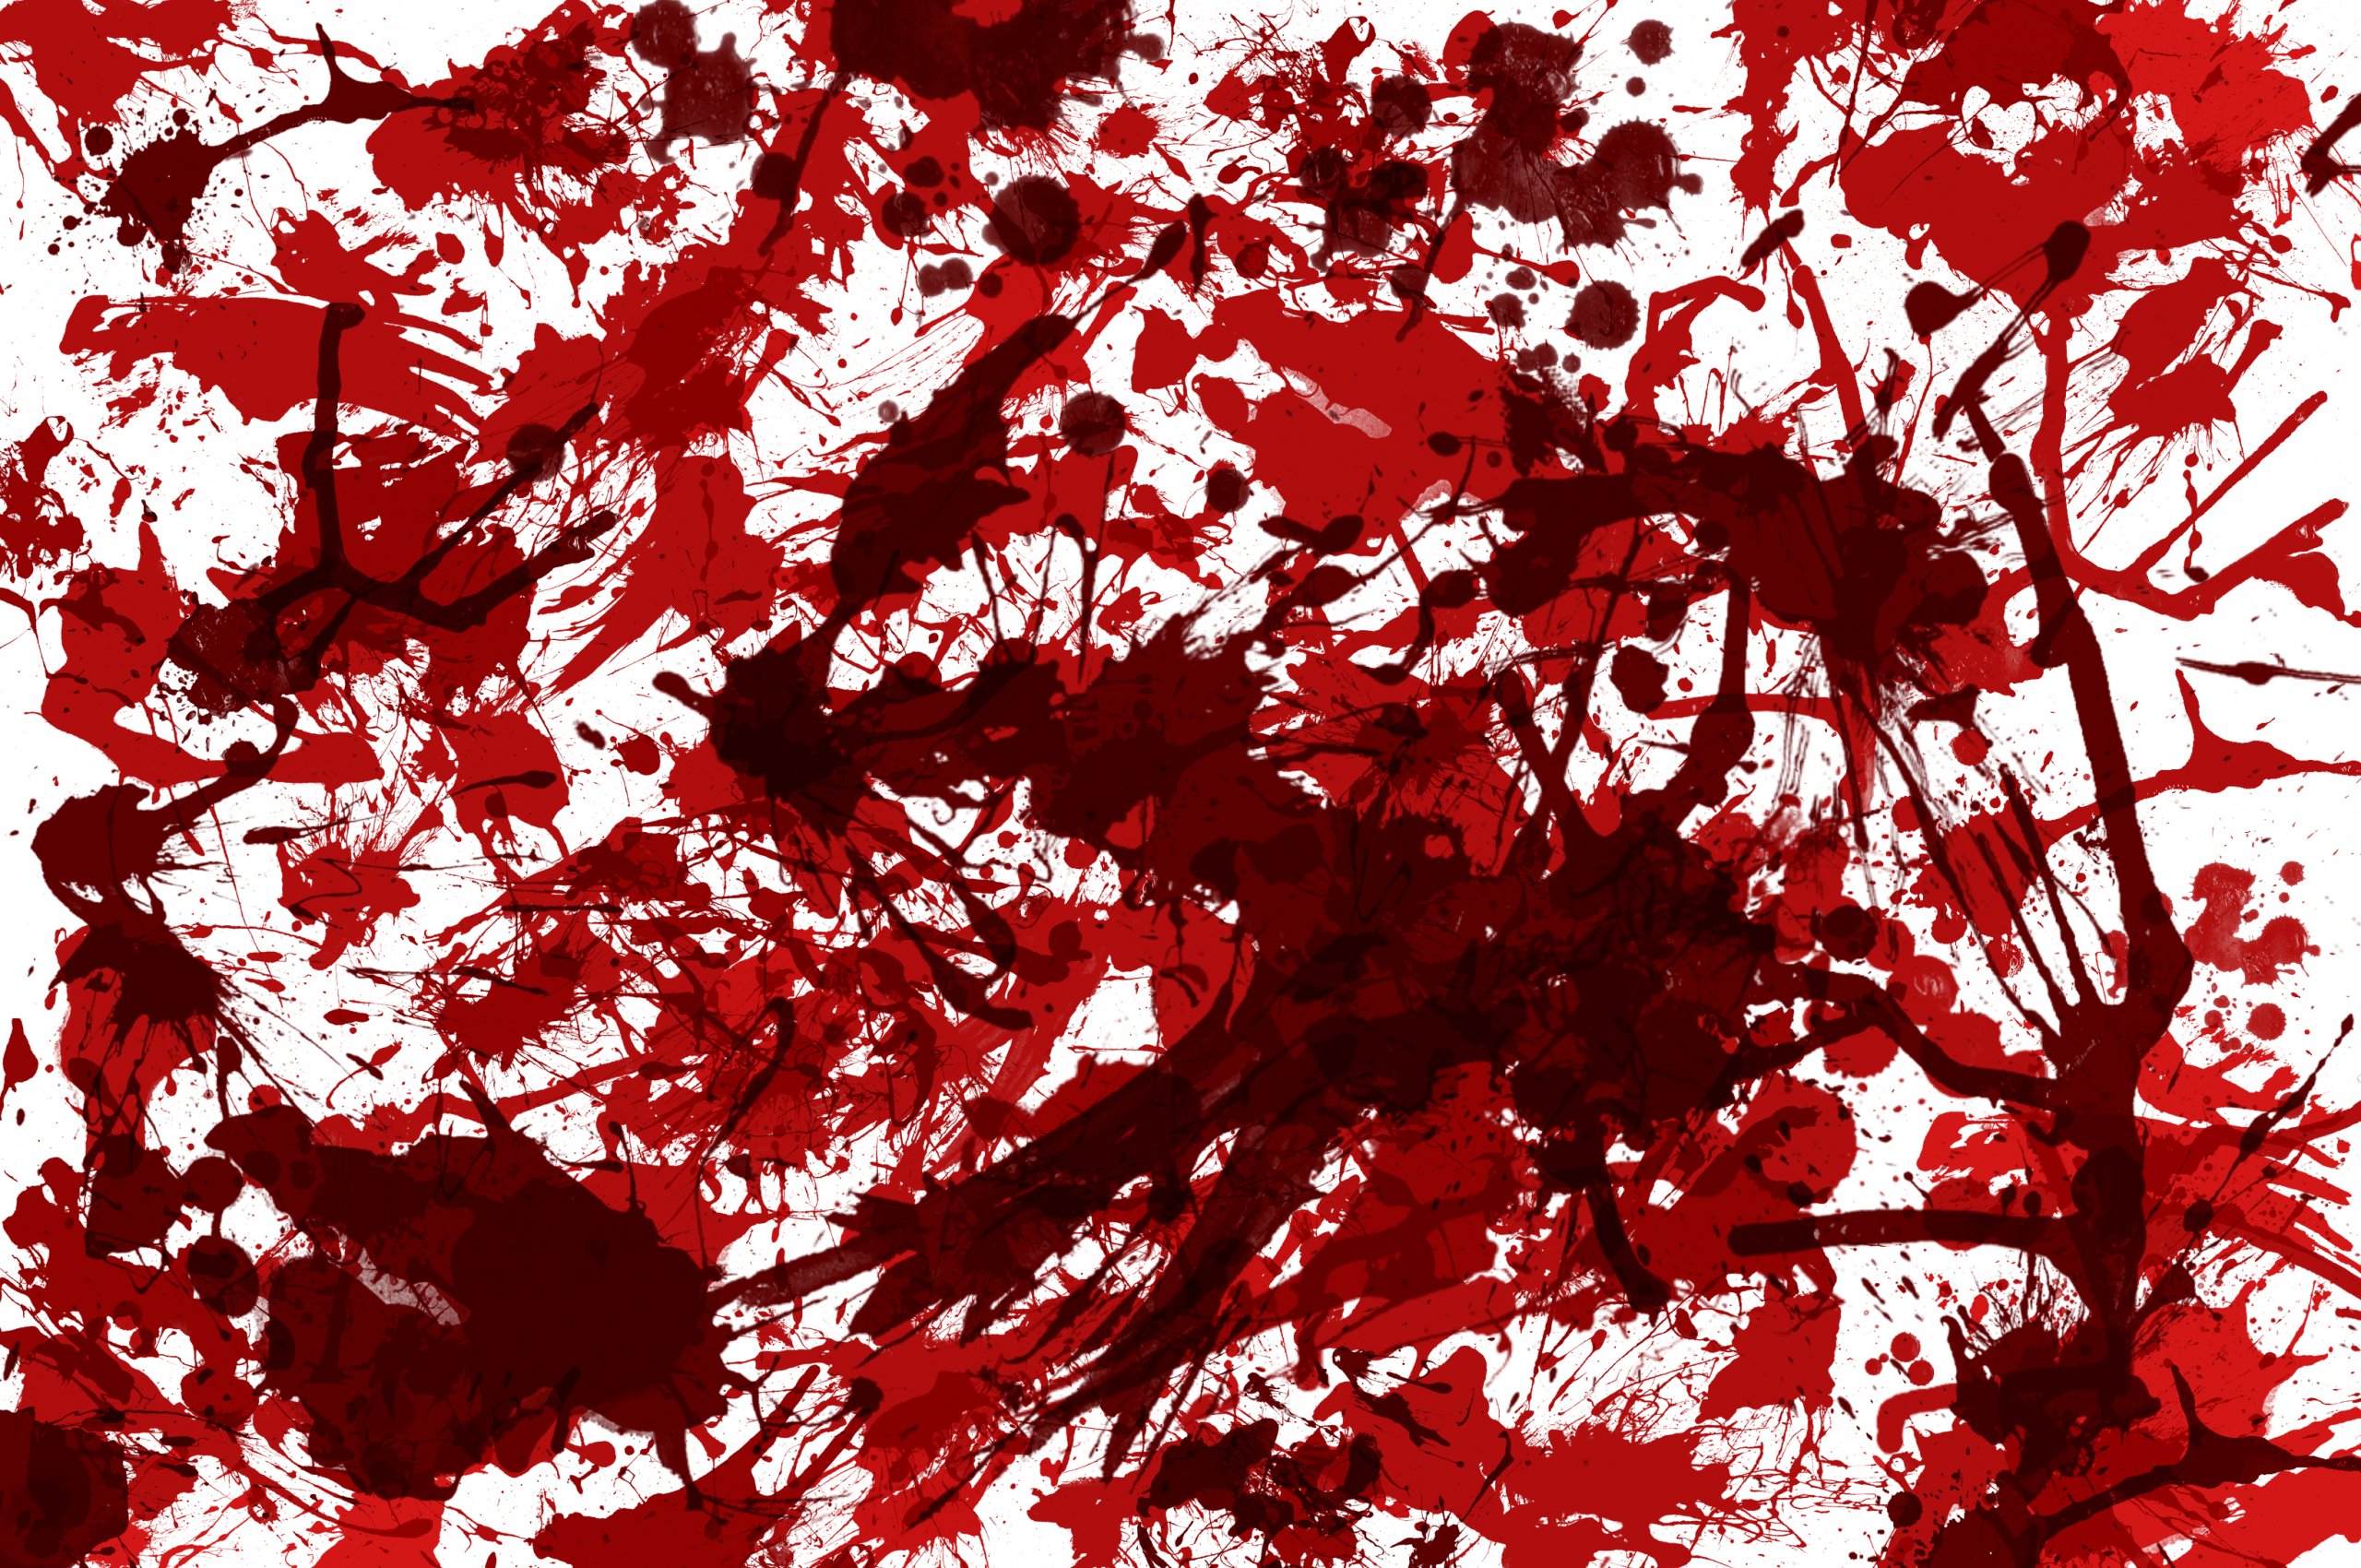 Blood Spatter Texture / A blood splatter i created in adobe photoshop cs3.